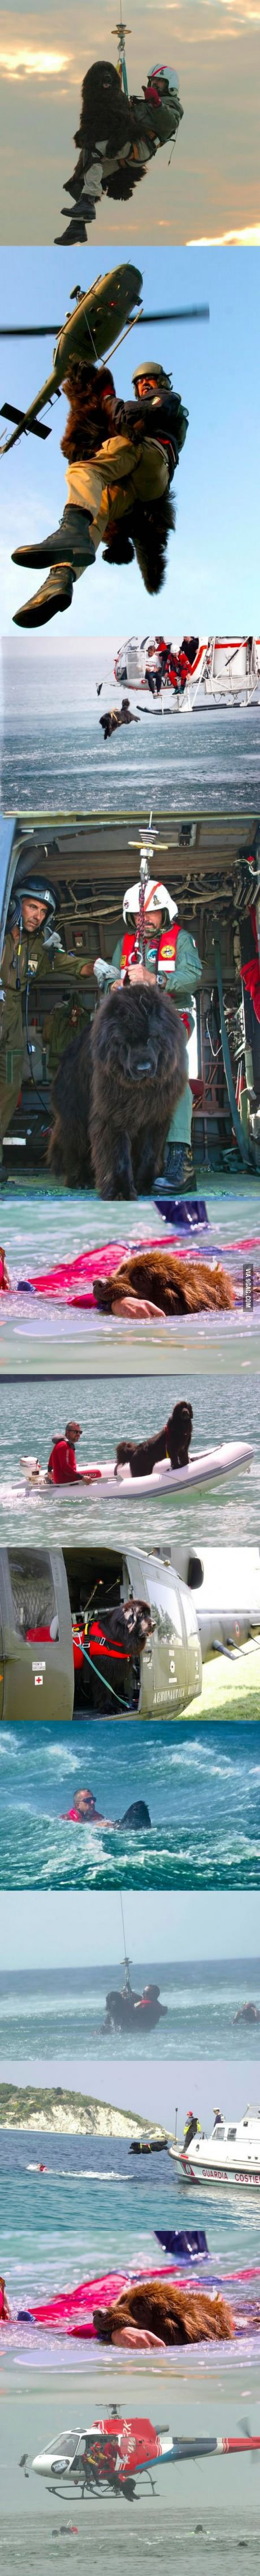 This Newfoundland dog helps the Coast Guard rescue people like it's no big deal